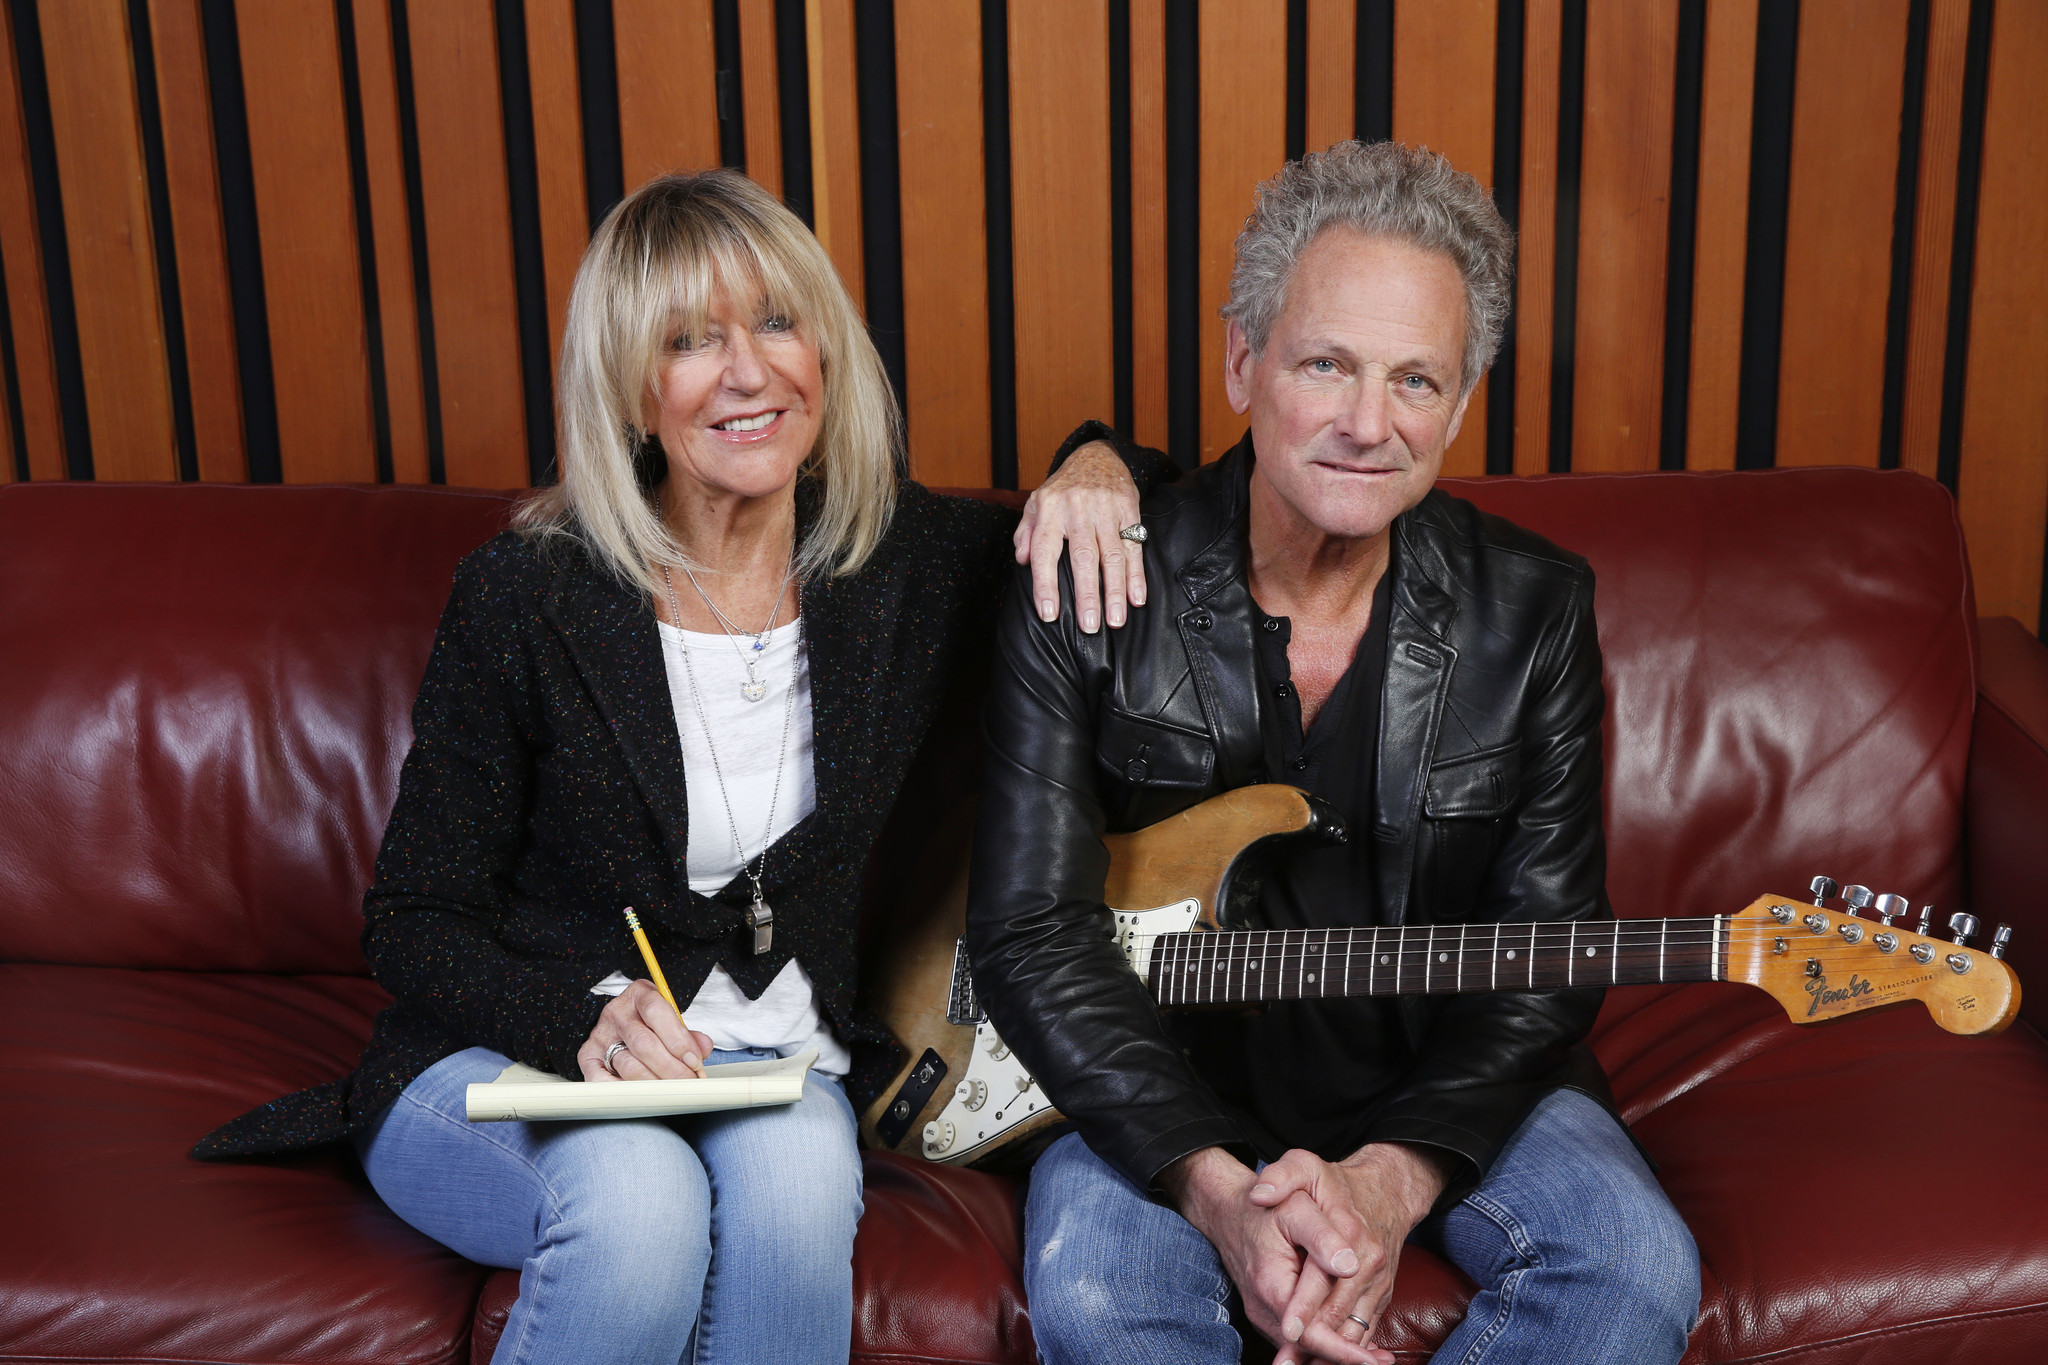 Christine McVie and Lindsey Buckingham between recording sessions at West L.A.'s Village Studios in December 2016.